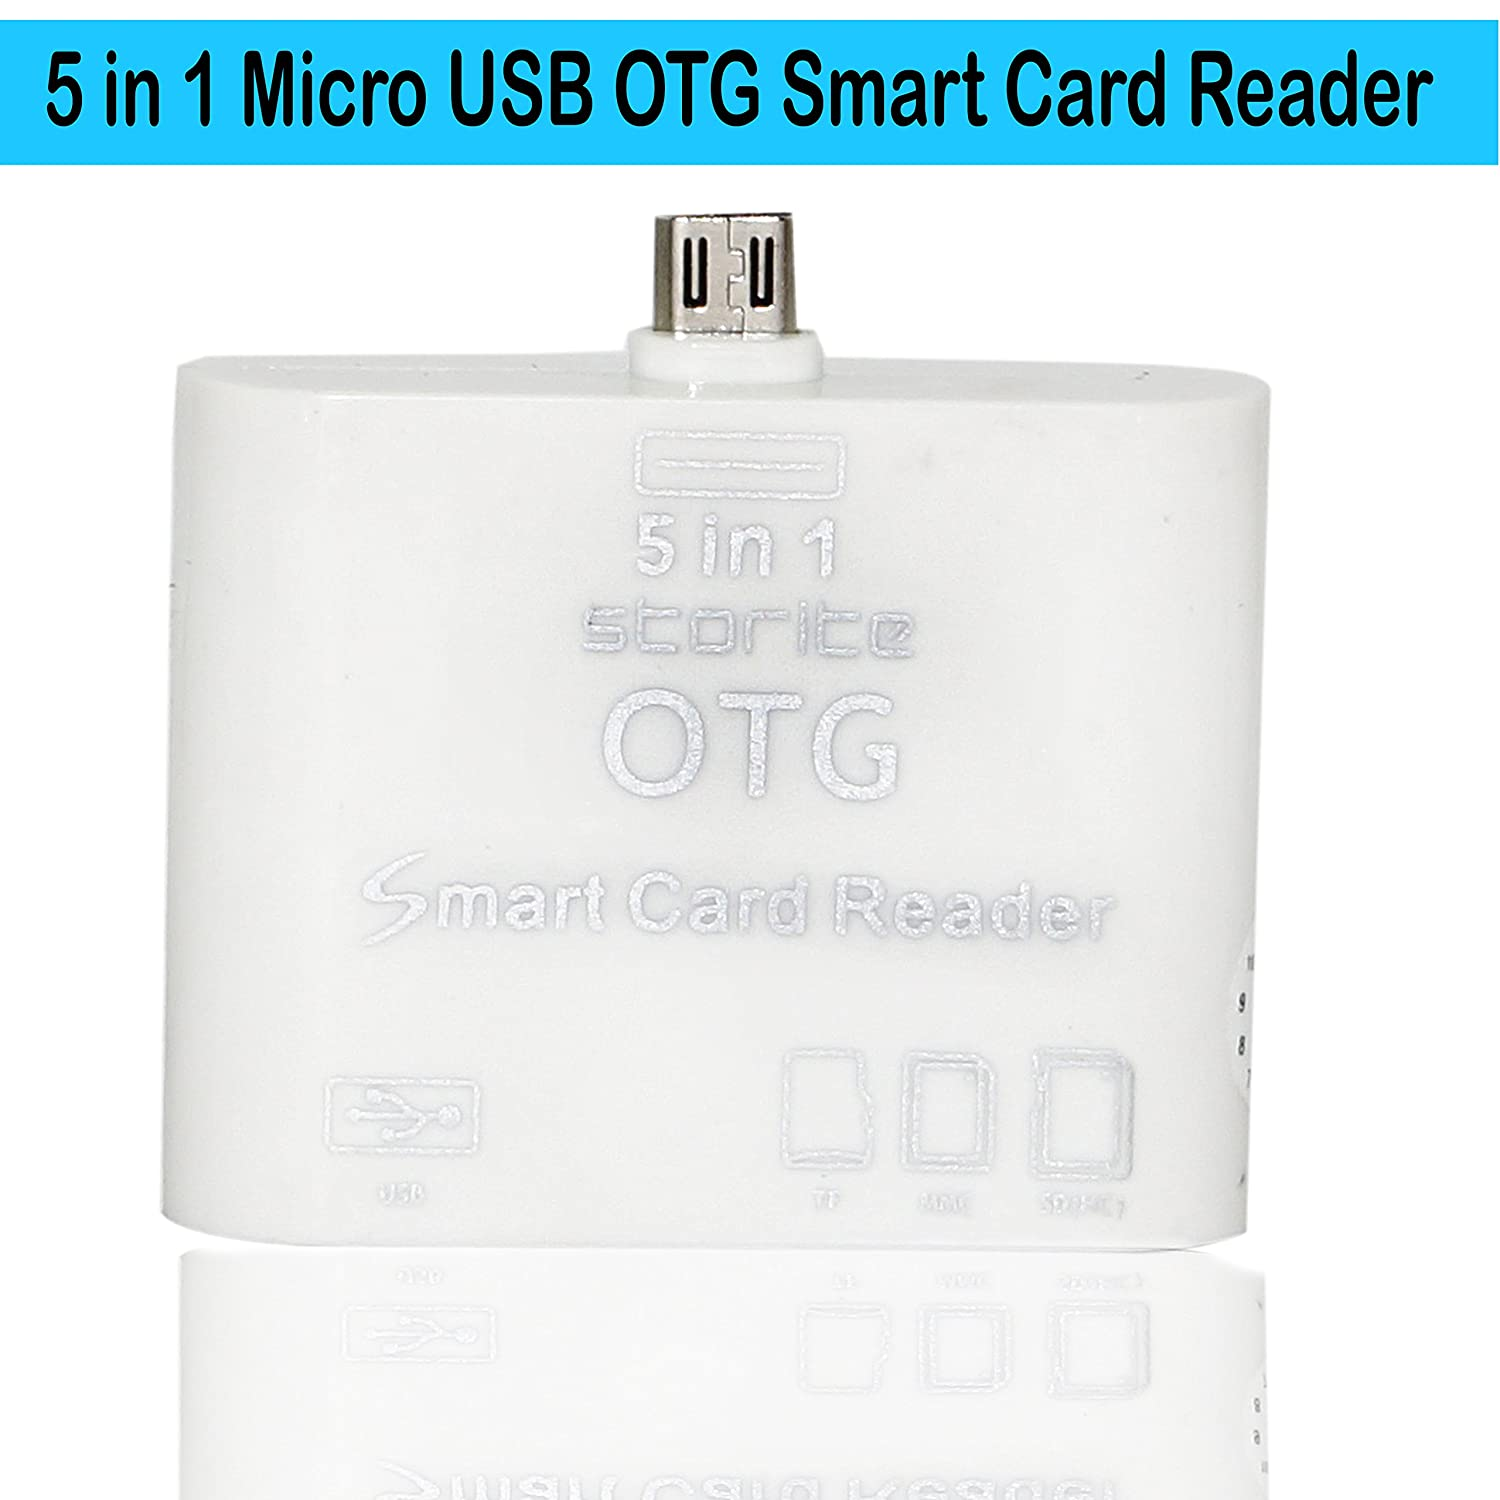 Buy Storite 5 In 1 Micro Usb Otg Card Reader Sdhc M2 Cardreader Mmc Ms Tf Connection Kit For Smart Phones And Android Tablets White Online At Low Prices